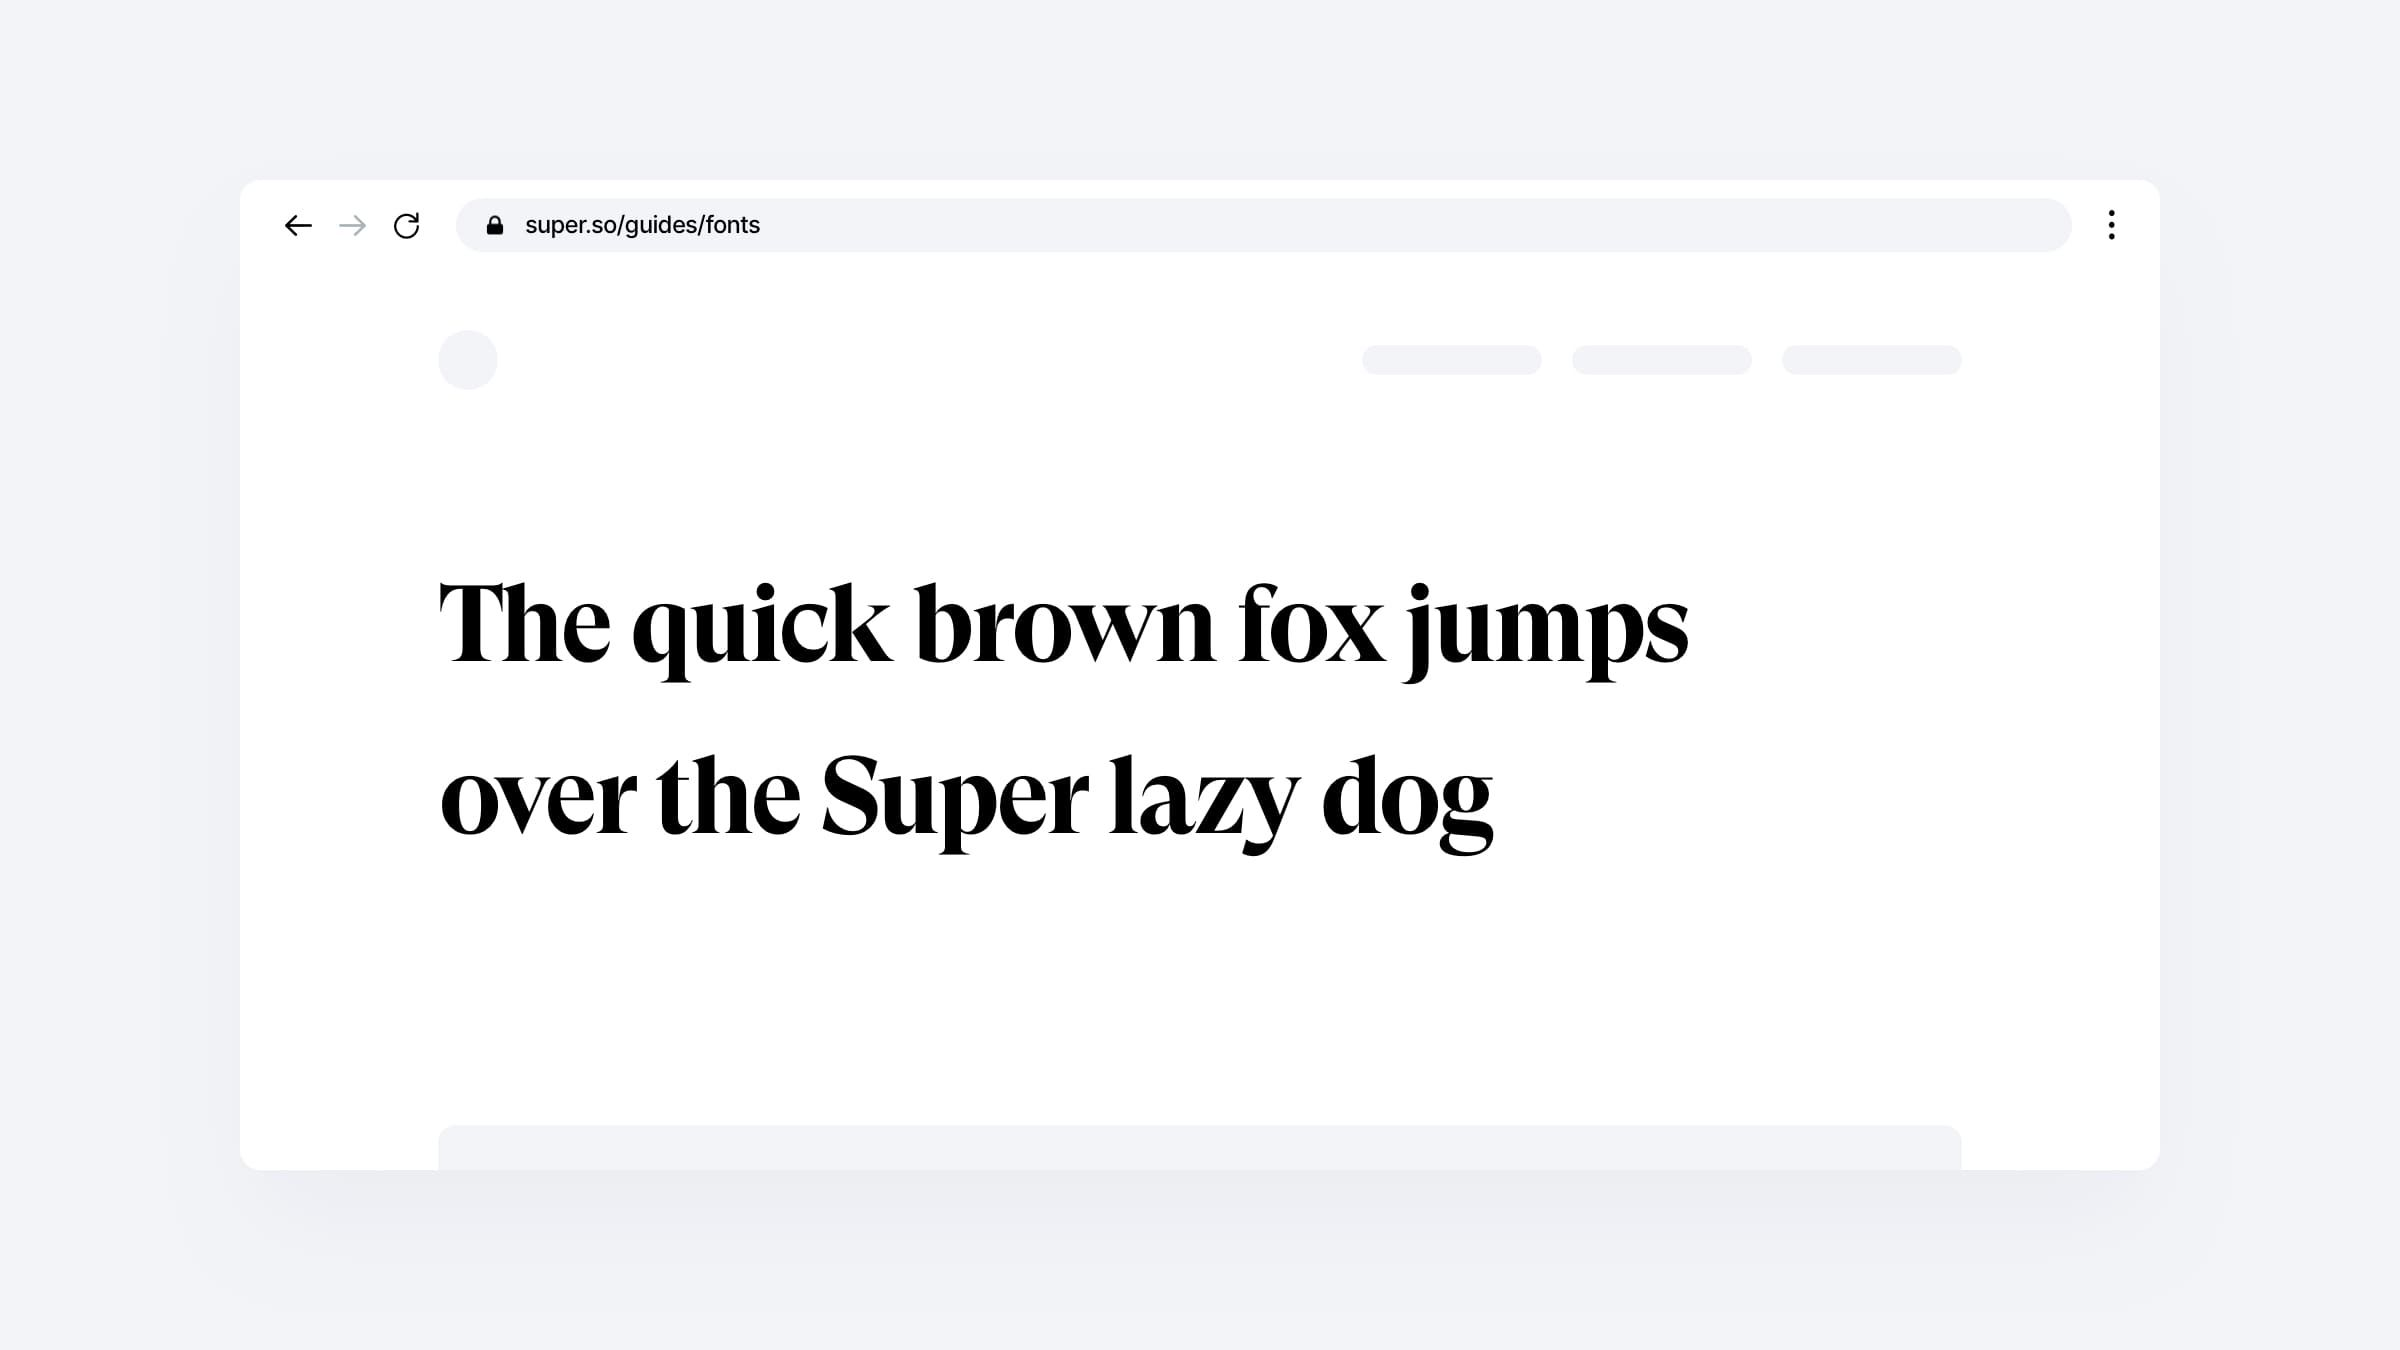 Add custom fonts to your Super site